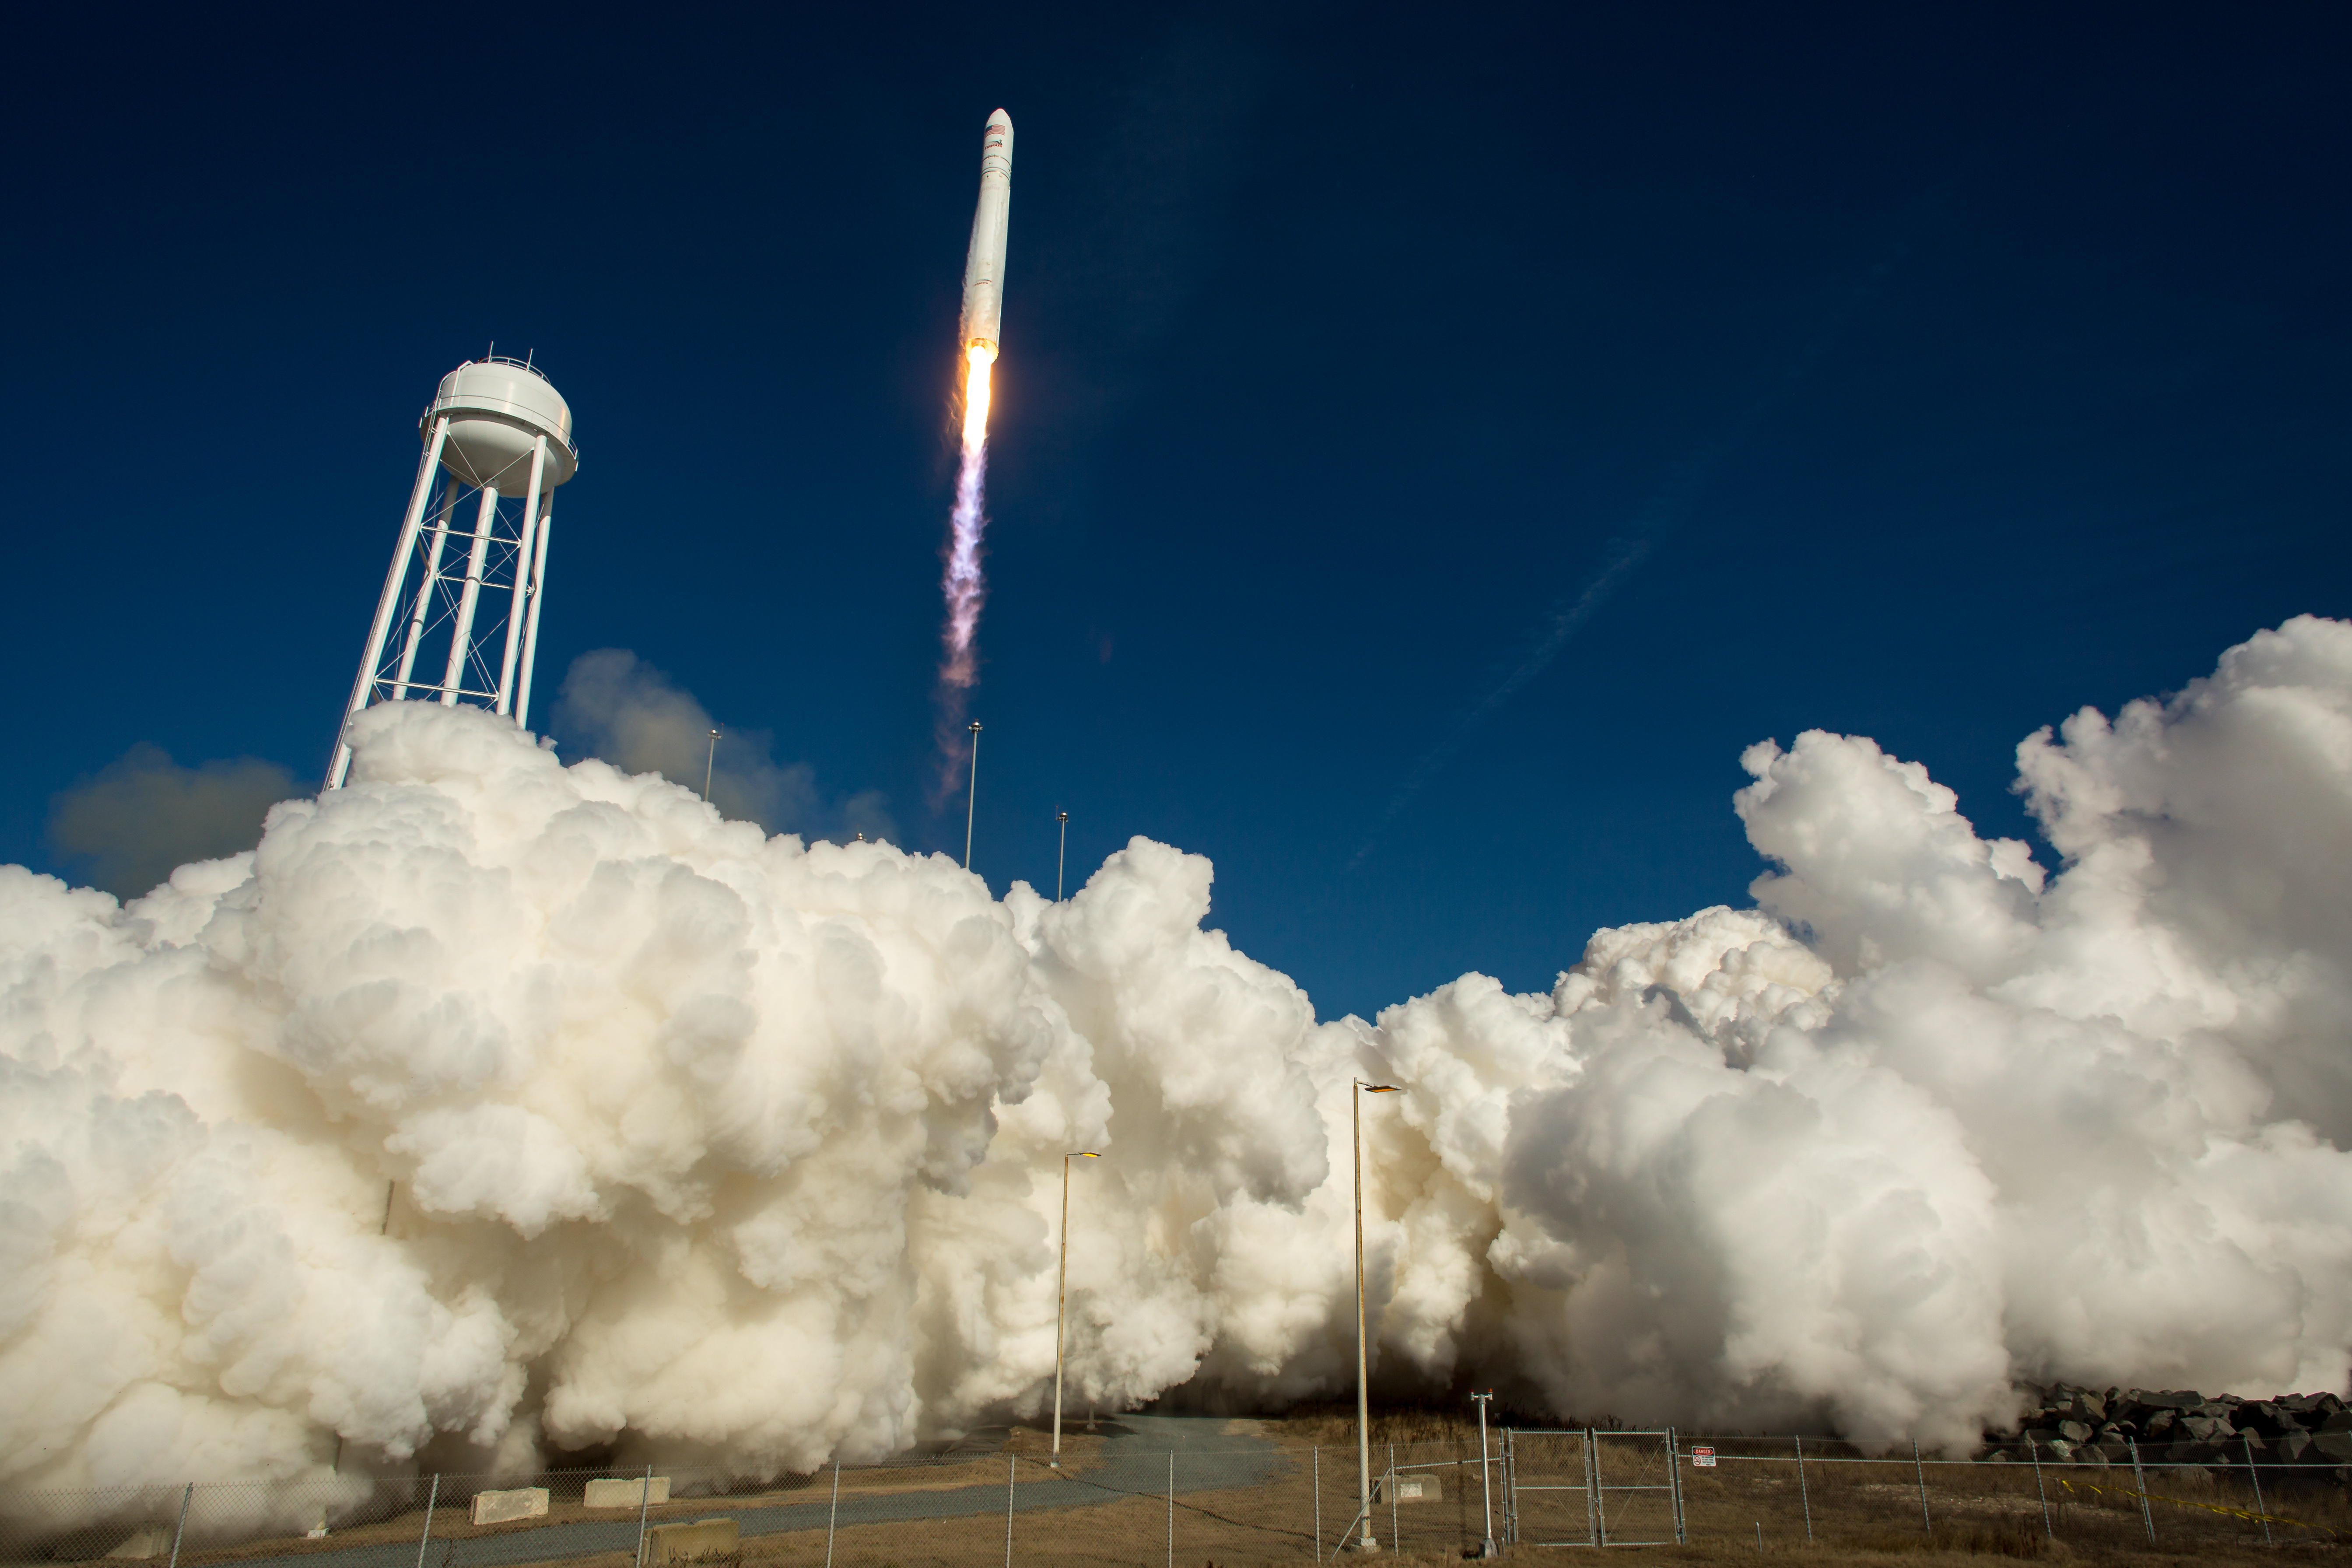 Antares Launches Orbital Sciences' Orb-1 Mission, Jan. 9, 2014